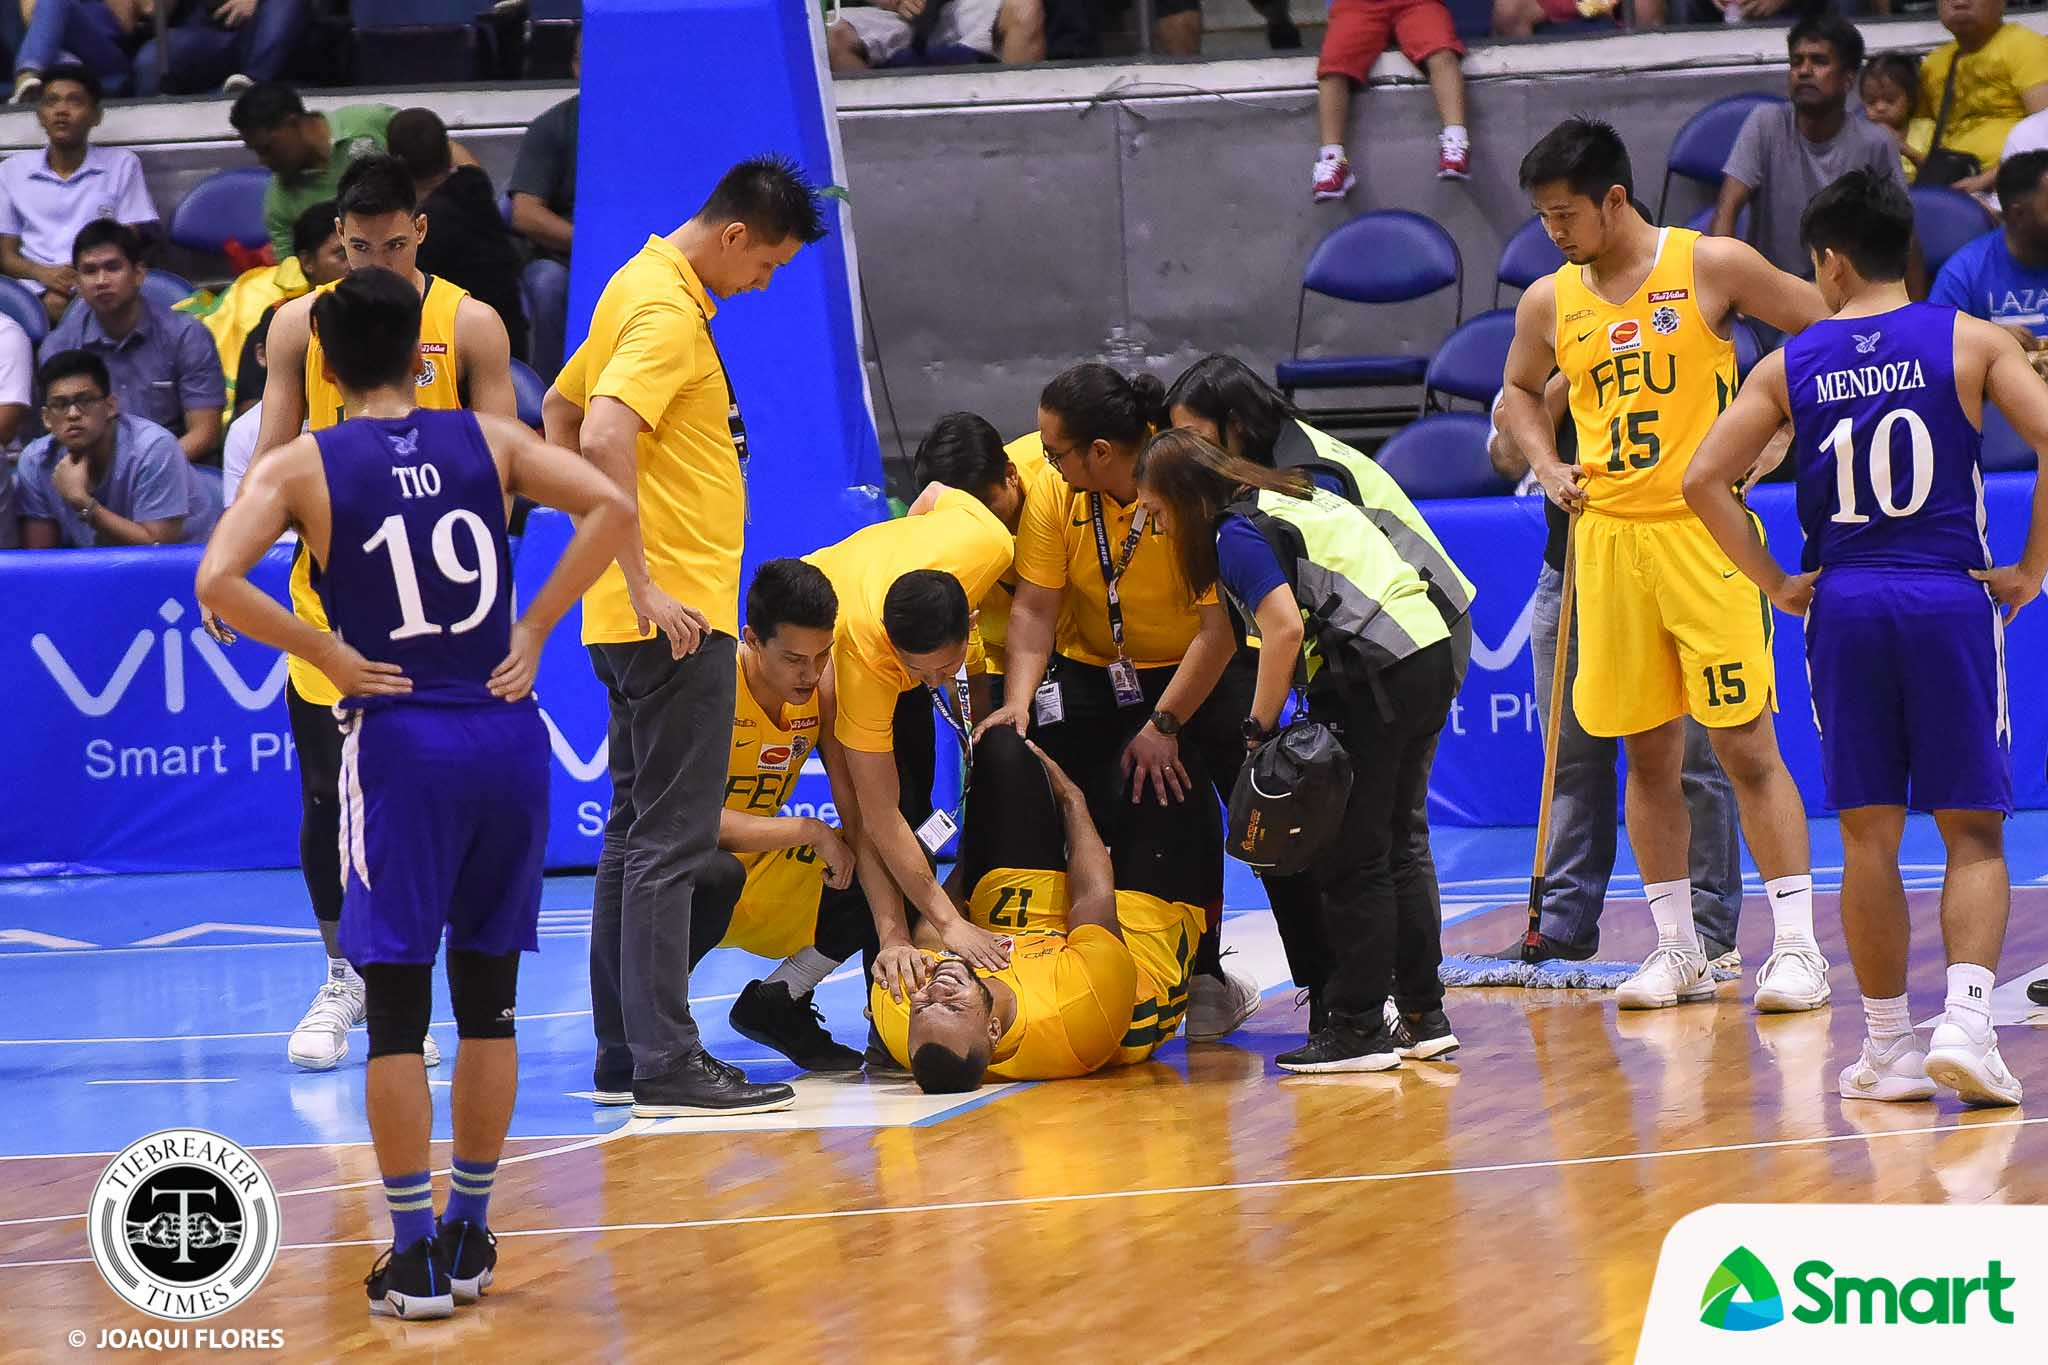 Tiebreaker Times Prince Orizu suffers high ankle sprain, remains day-to-day Basketball FEU News UAAP  UAAP Season 81 Men's Basketball UAAP Season 81 Prince Orizu FEU Men's Basketball